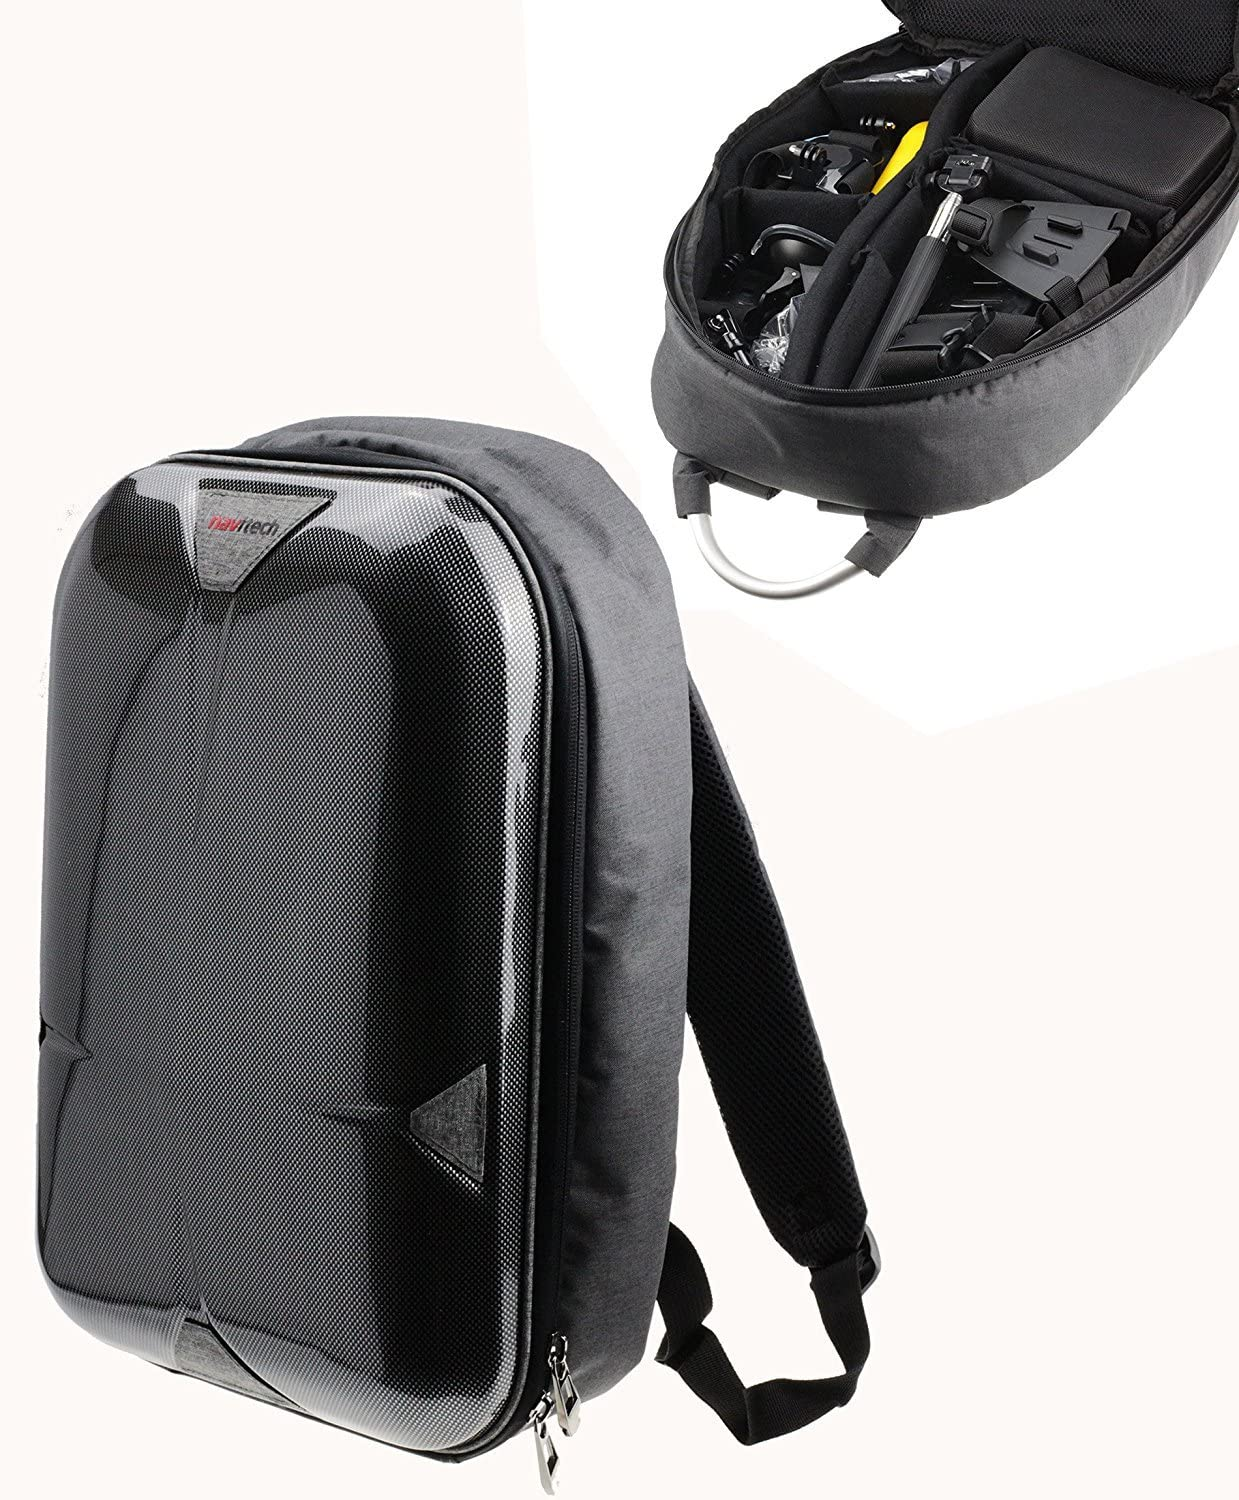 Navitech Hard Jacksonville Mall Shell Action Camera Compati All stores are sold Rucksack Backpack Case